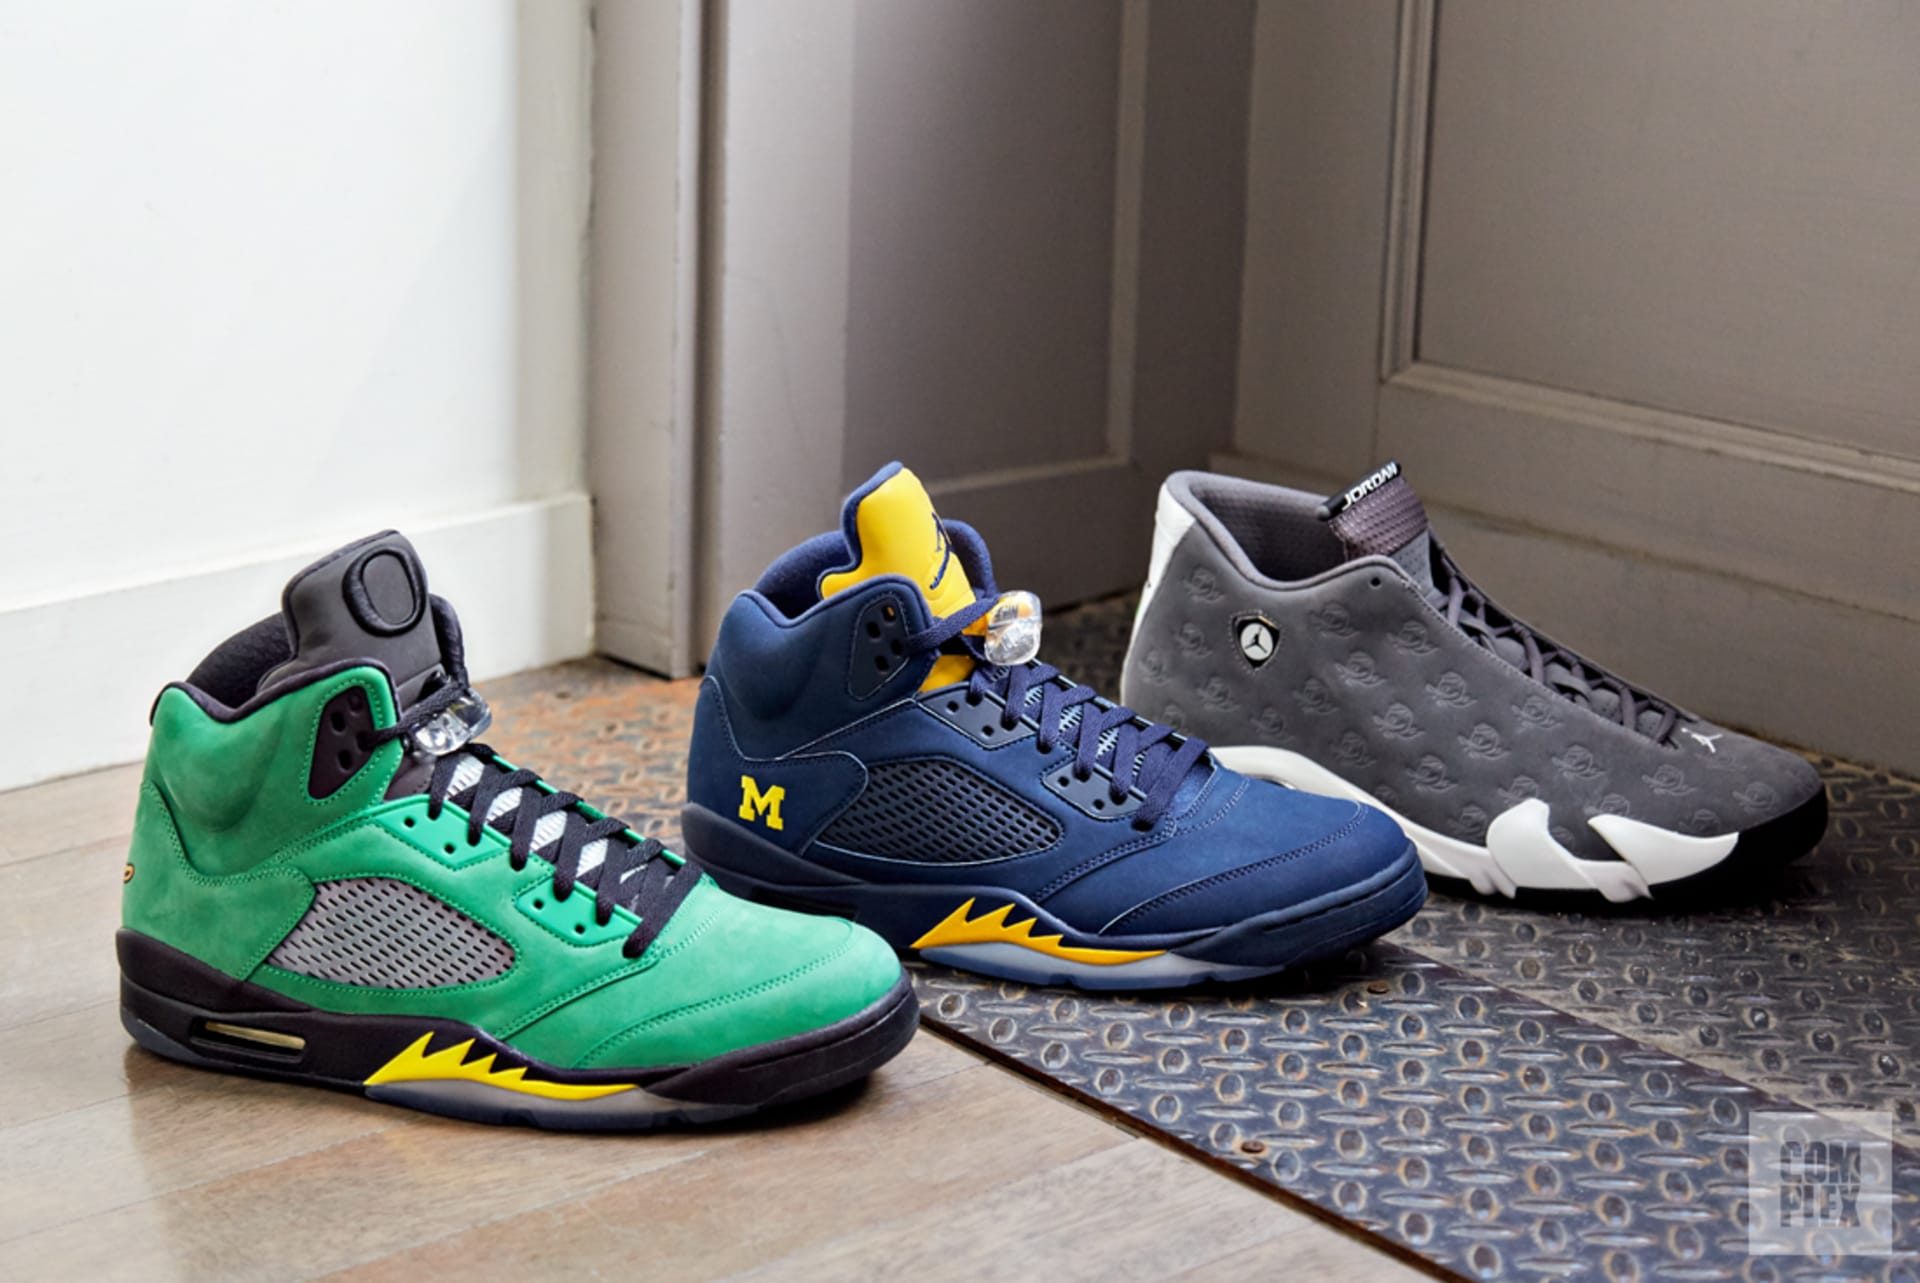 9f5c096cace81 Air Jordan PEs made for the University of Oregon and Michigan. Sneakers  courtesy of Stadium Goods. Image via Complex Original/David Cabrera